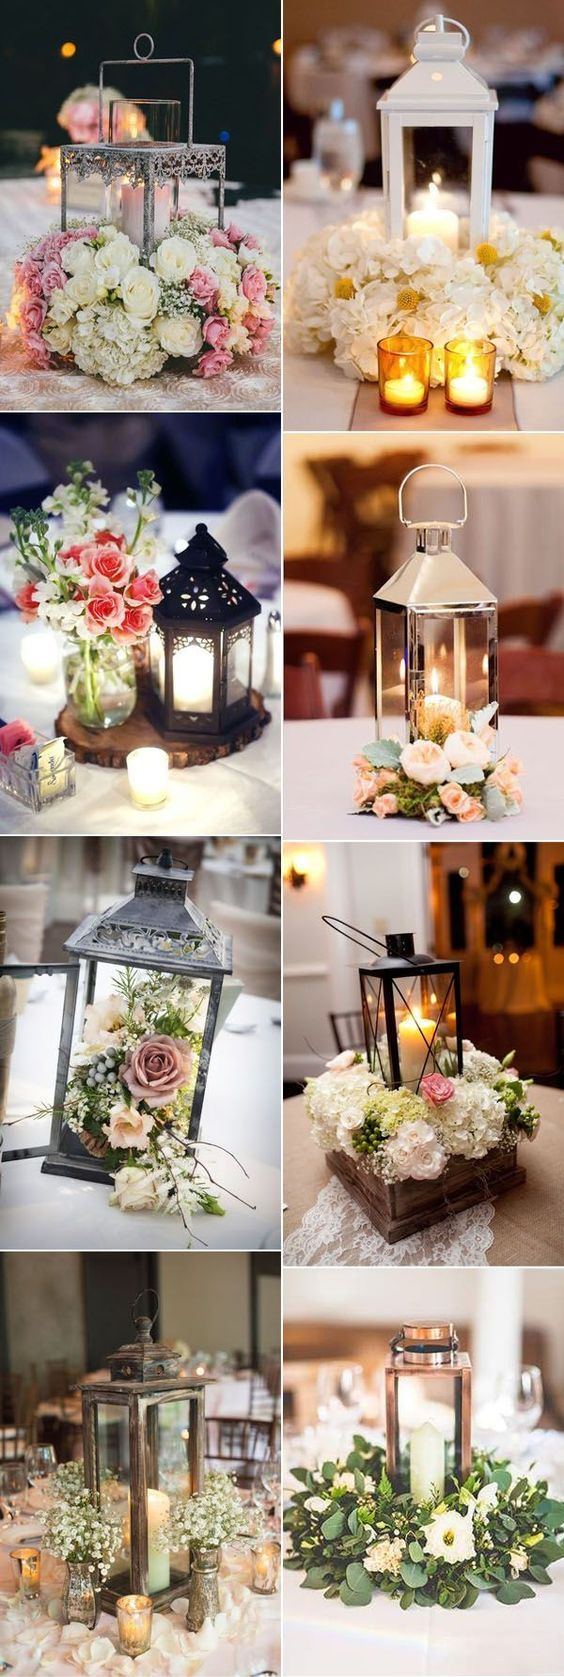 70 diy wedding decorations that will blow your mind pinterest 70 diy wedding decorations that will blow your mind crafts and diy ideas junglespirit Images